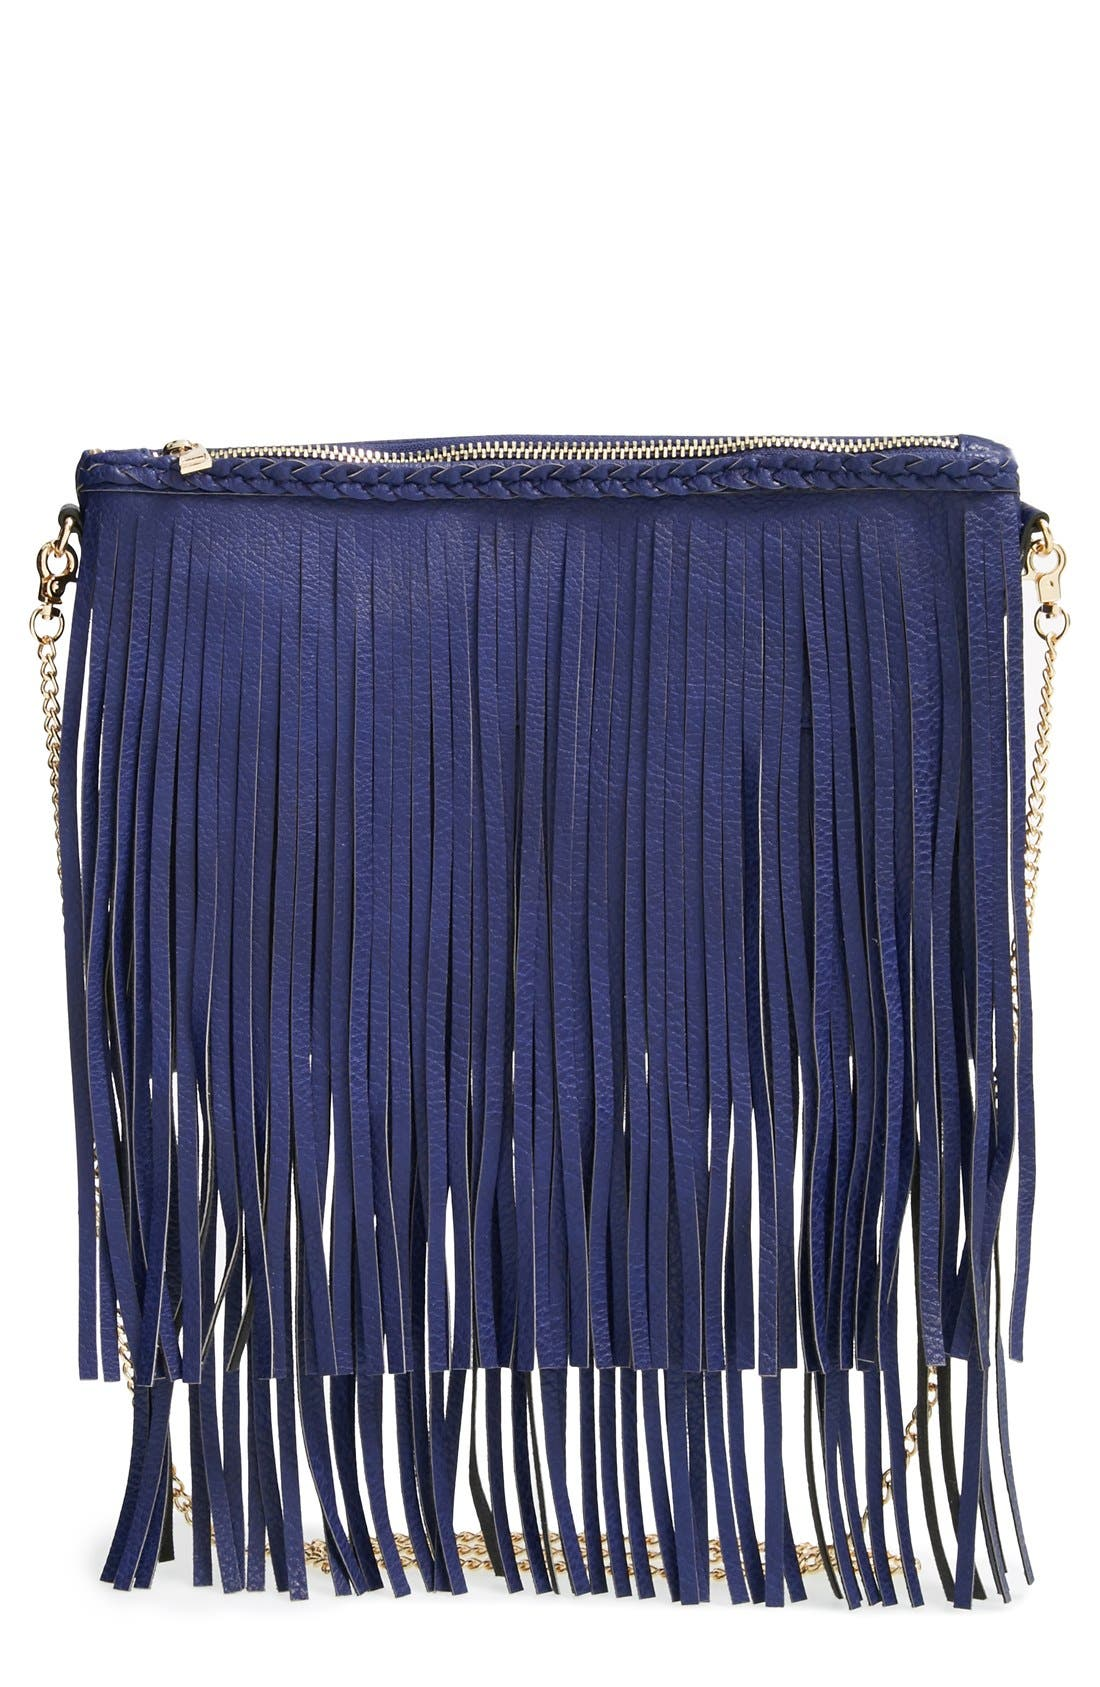 Main Image - Sole Society 'Rose' Fringe Faux Leather Convertible Crossbody Bag